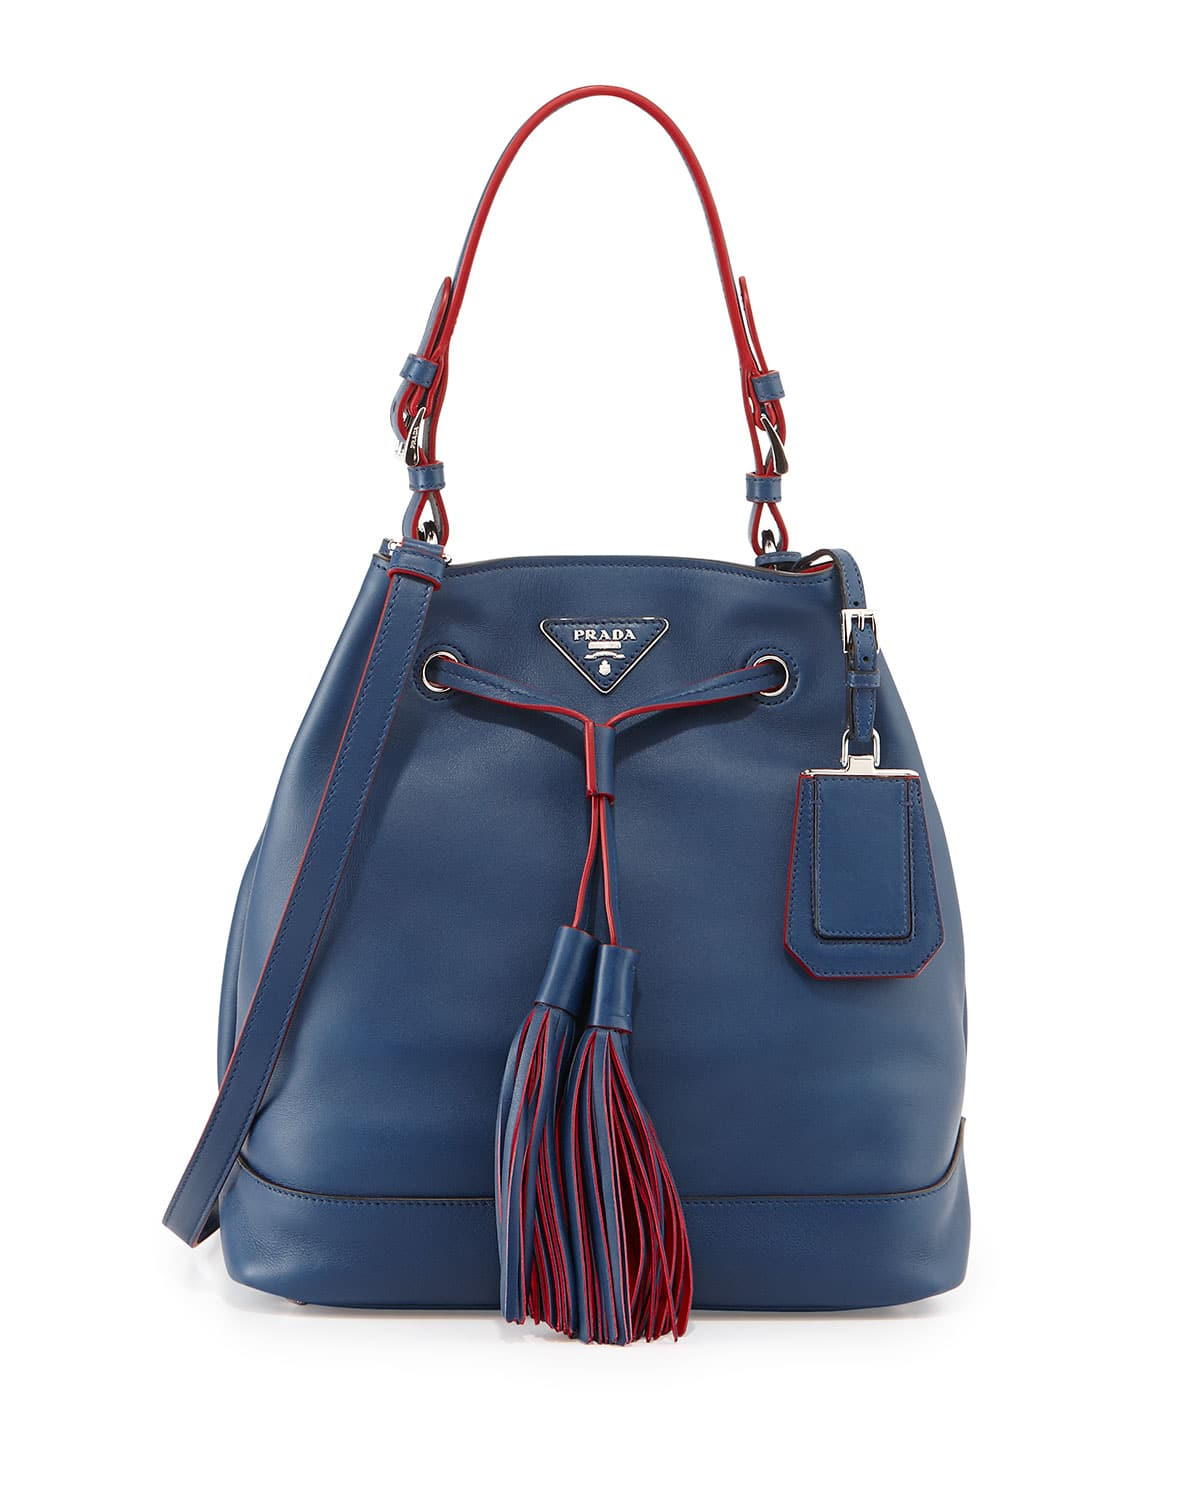 prada vela tote - Prada Pre-Fall 2014 Bag Collection featuring new Double Totes in ...